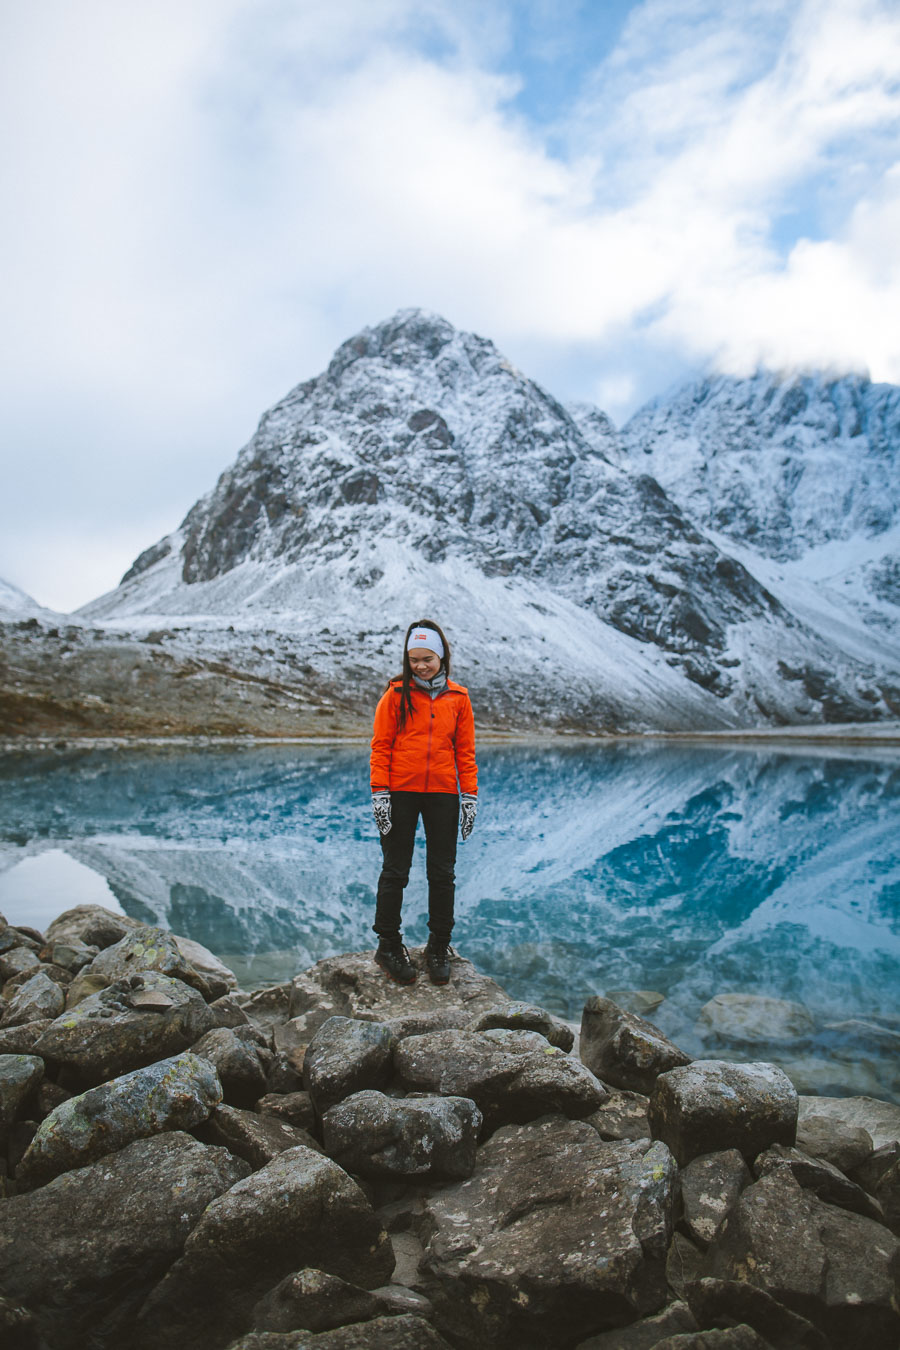 Girl in an orange jacket in front of a mirrored lake